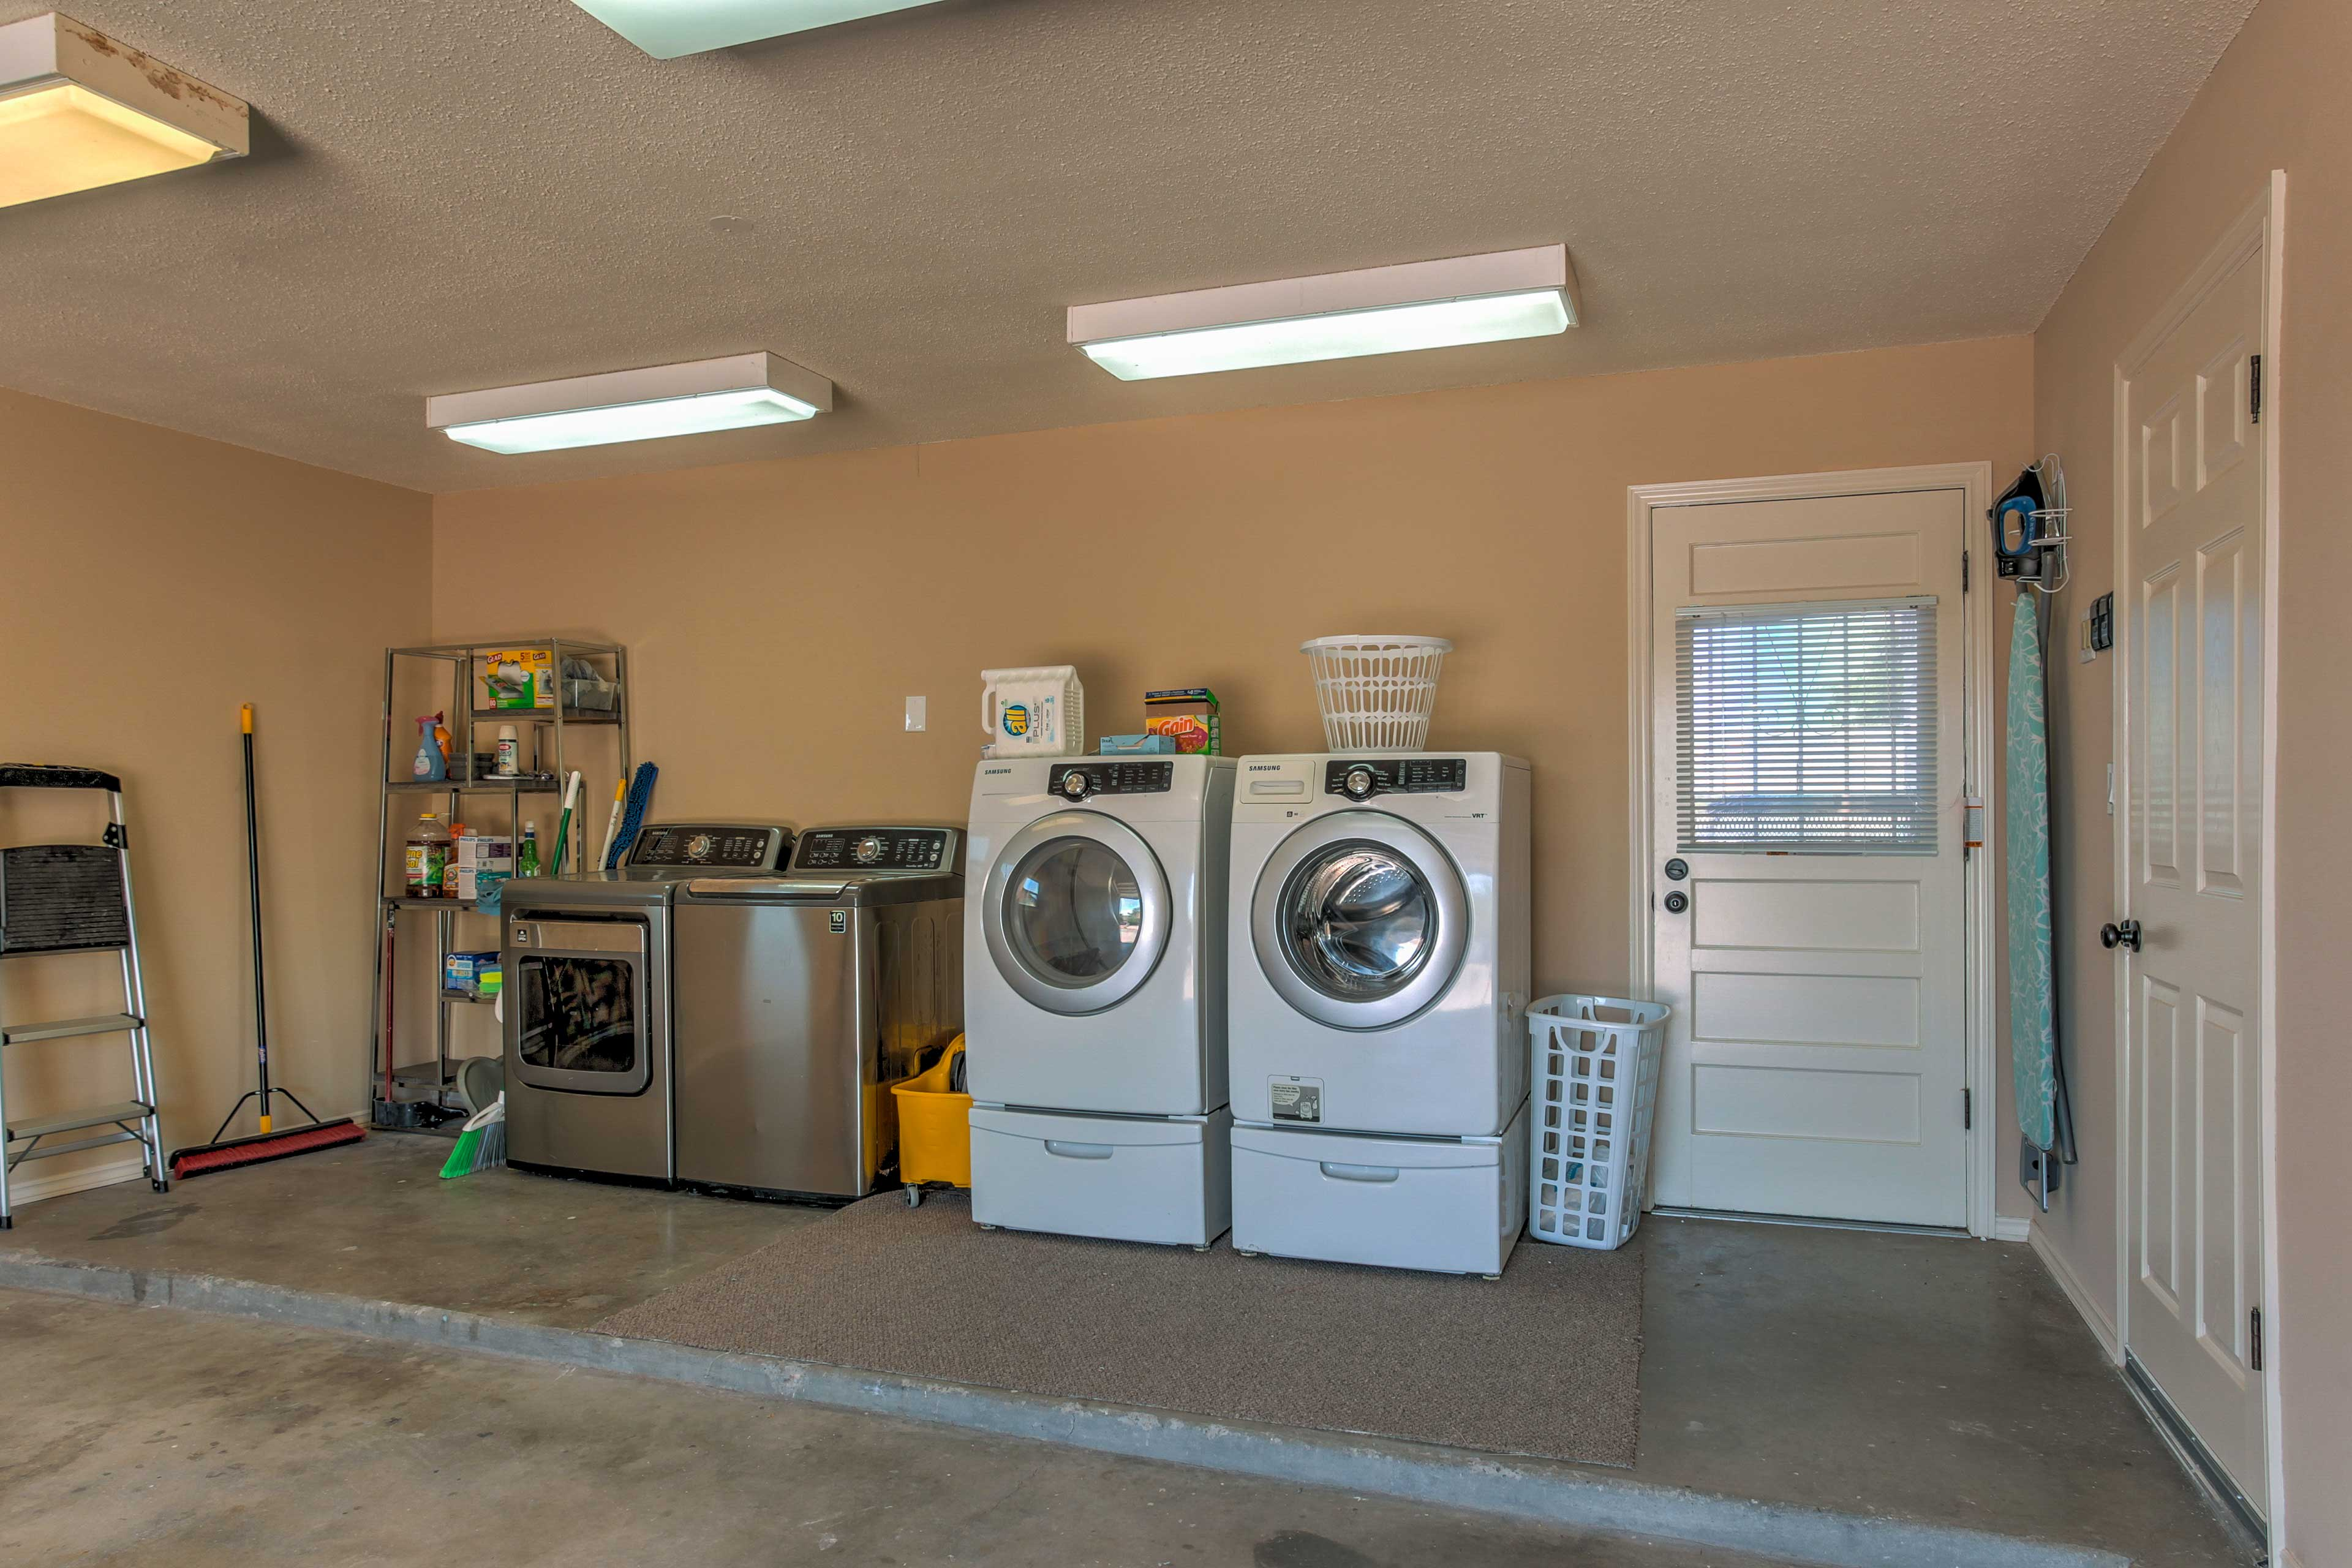 Utilize the laundry machines to keep your clothes clean during your stay.